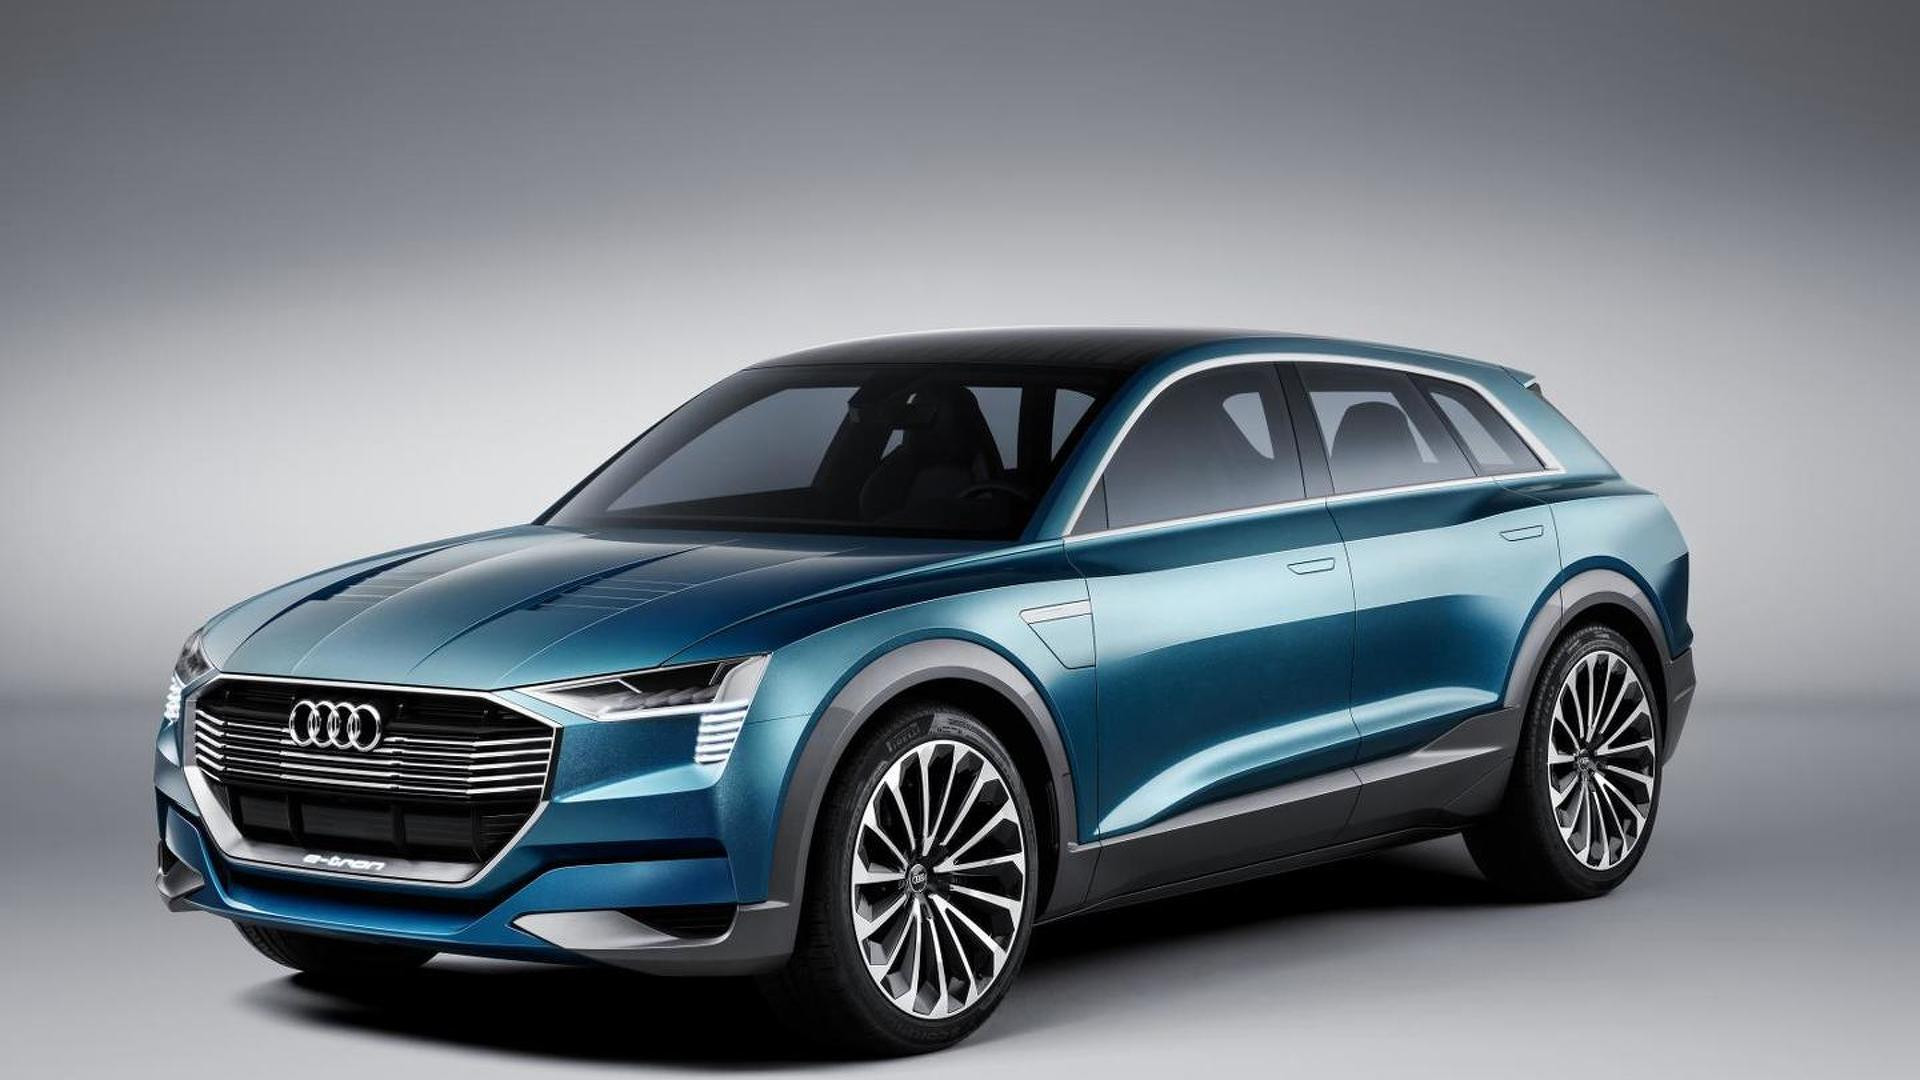 Audi Q6 to be assembled in Belgium, says report